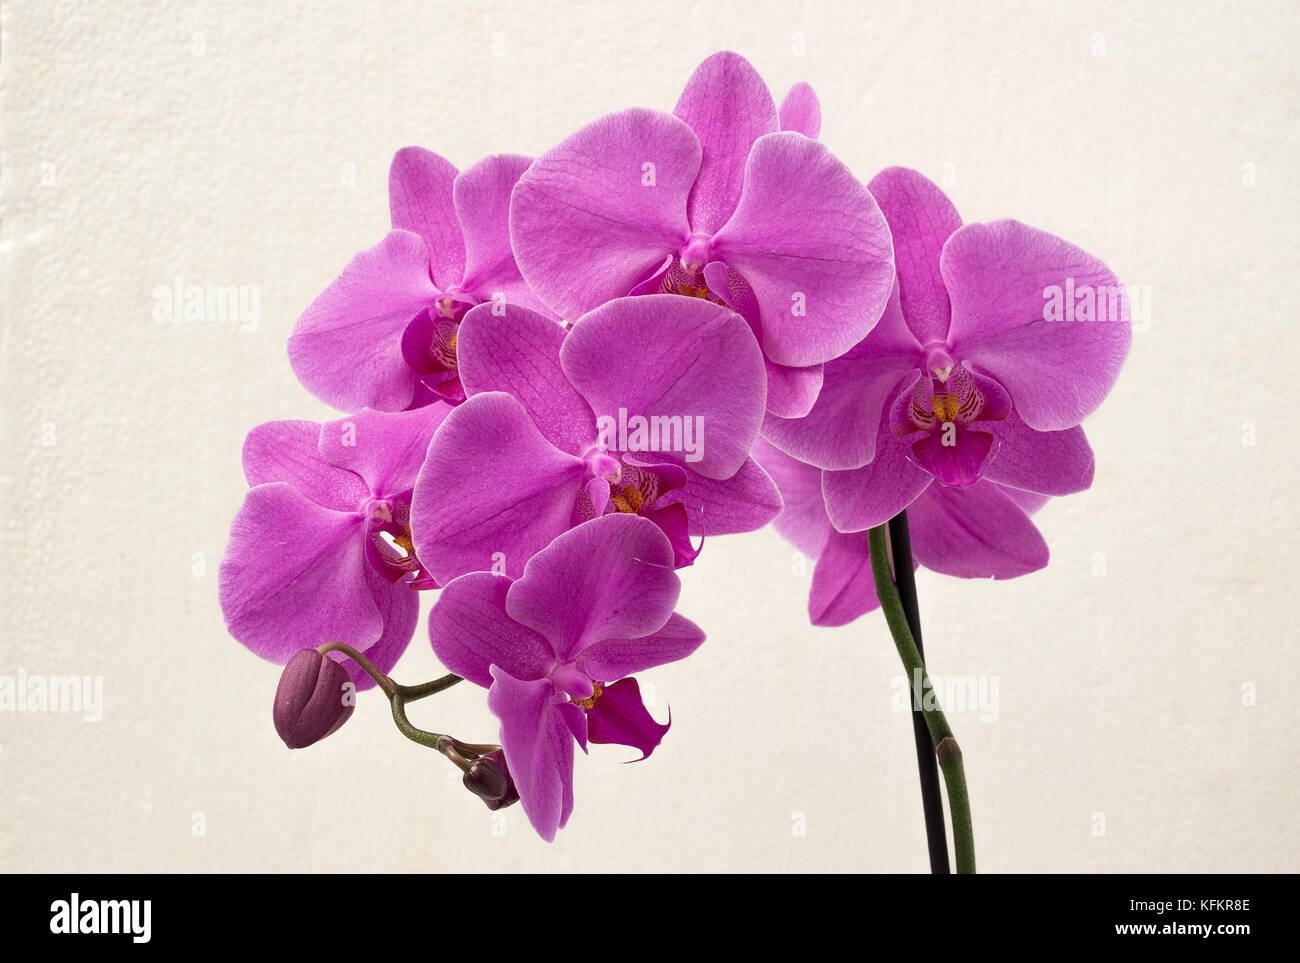 Magenta Moth Orchid flowering in a bathroom - Stock Image